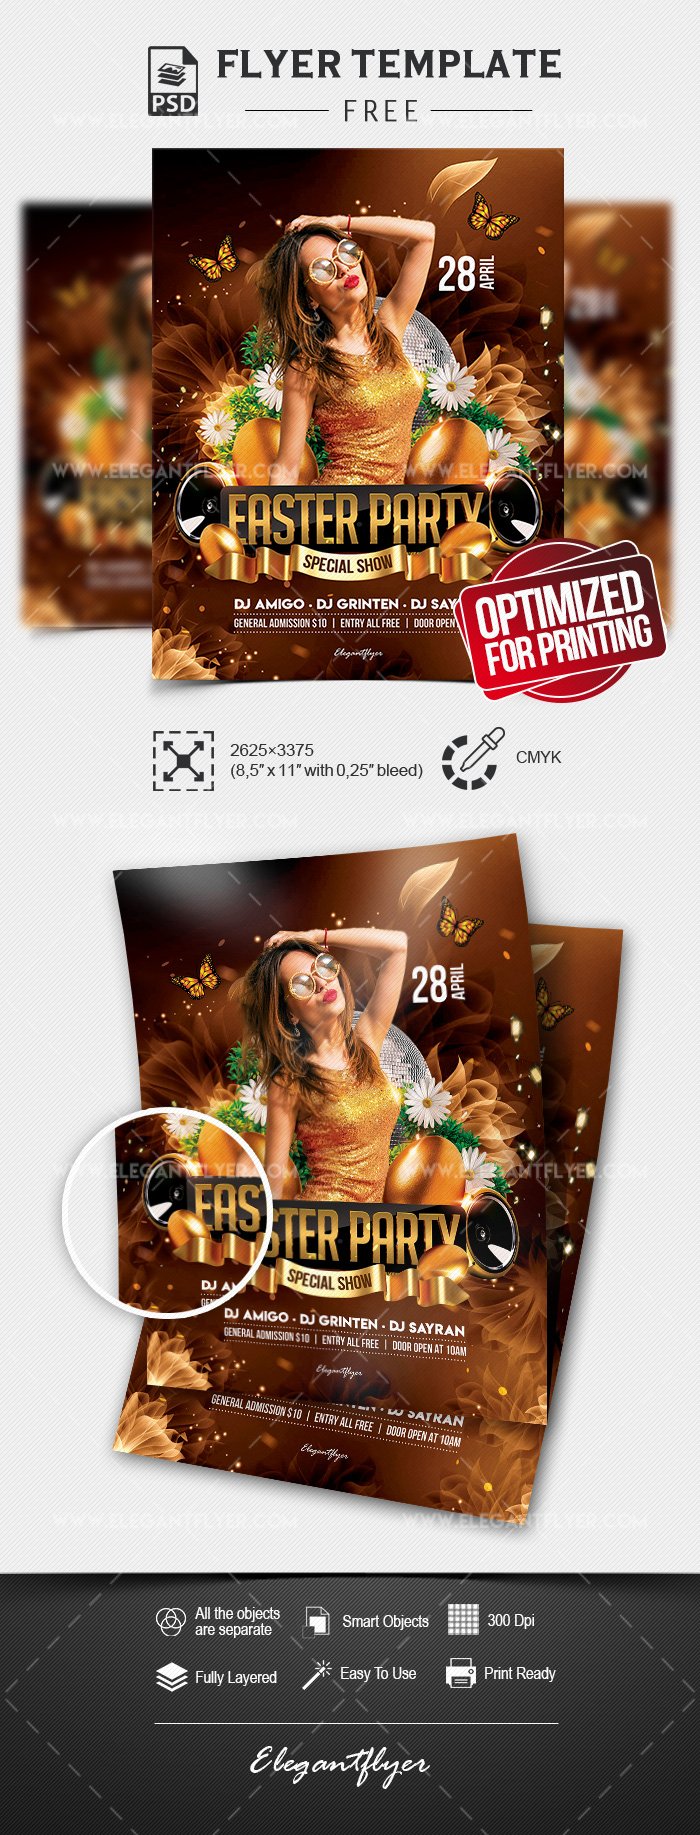 Easter Party Flyer – Free Flyer PSD Template